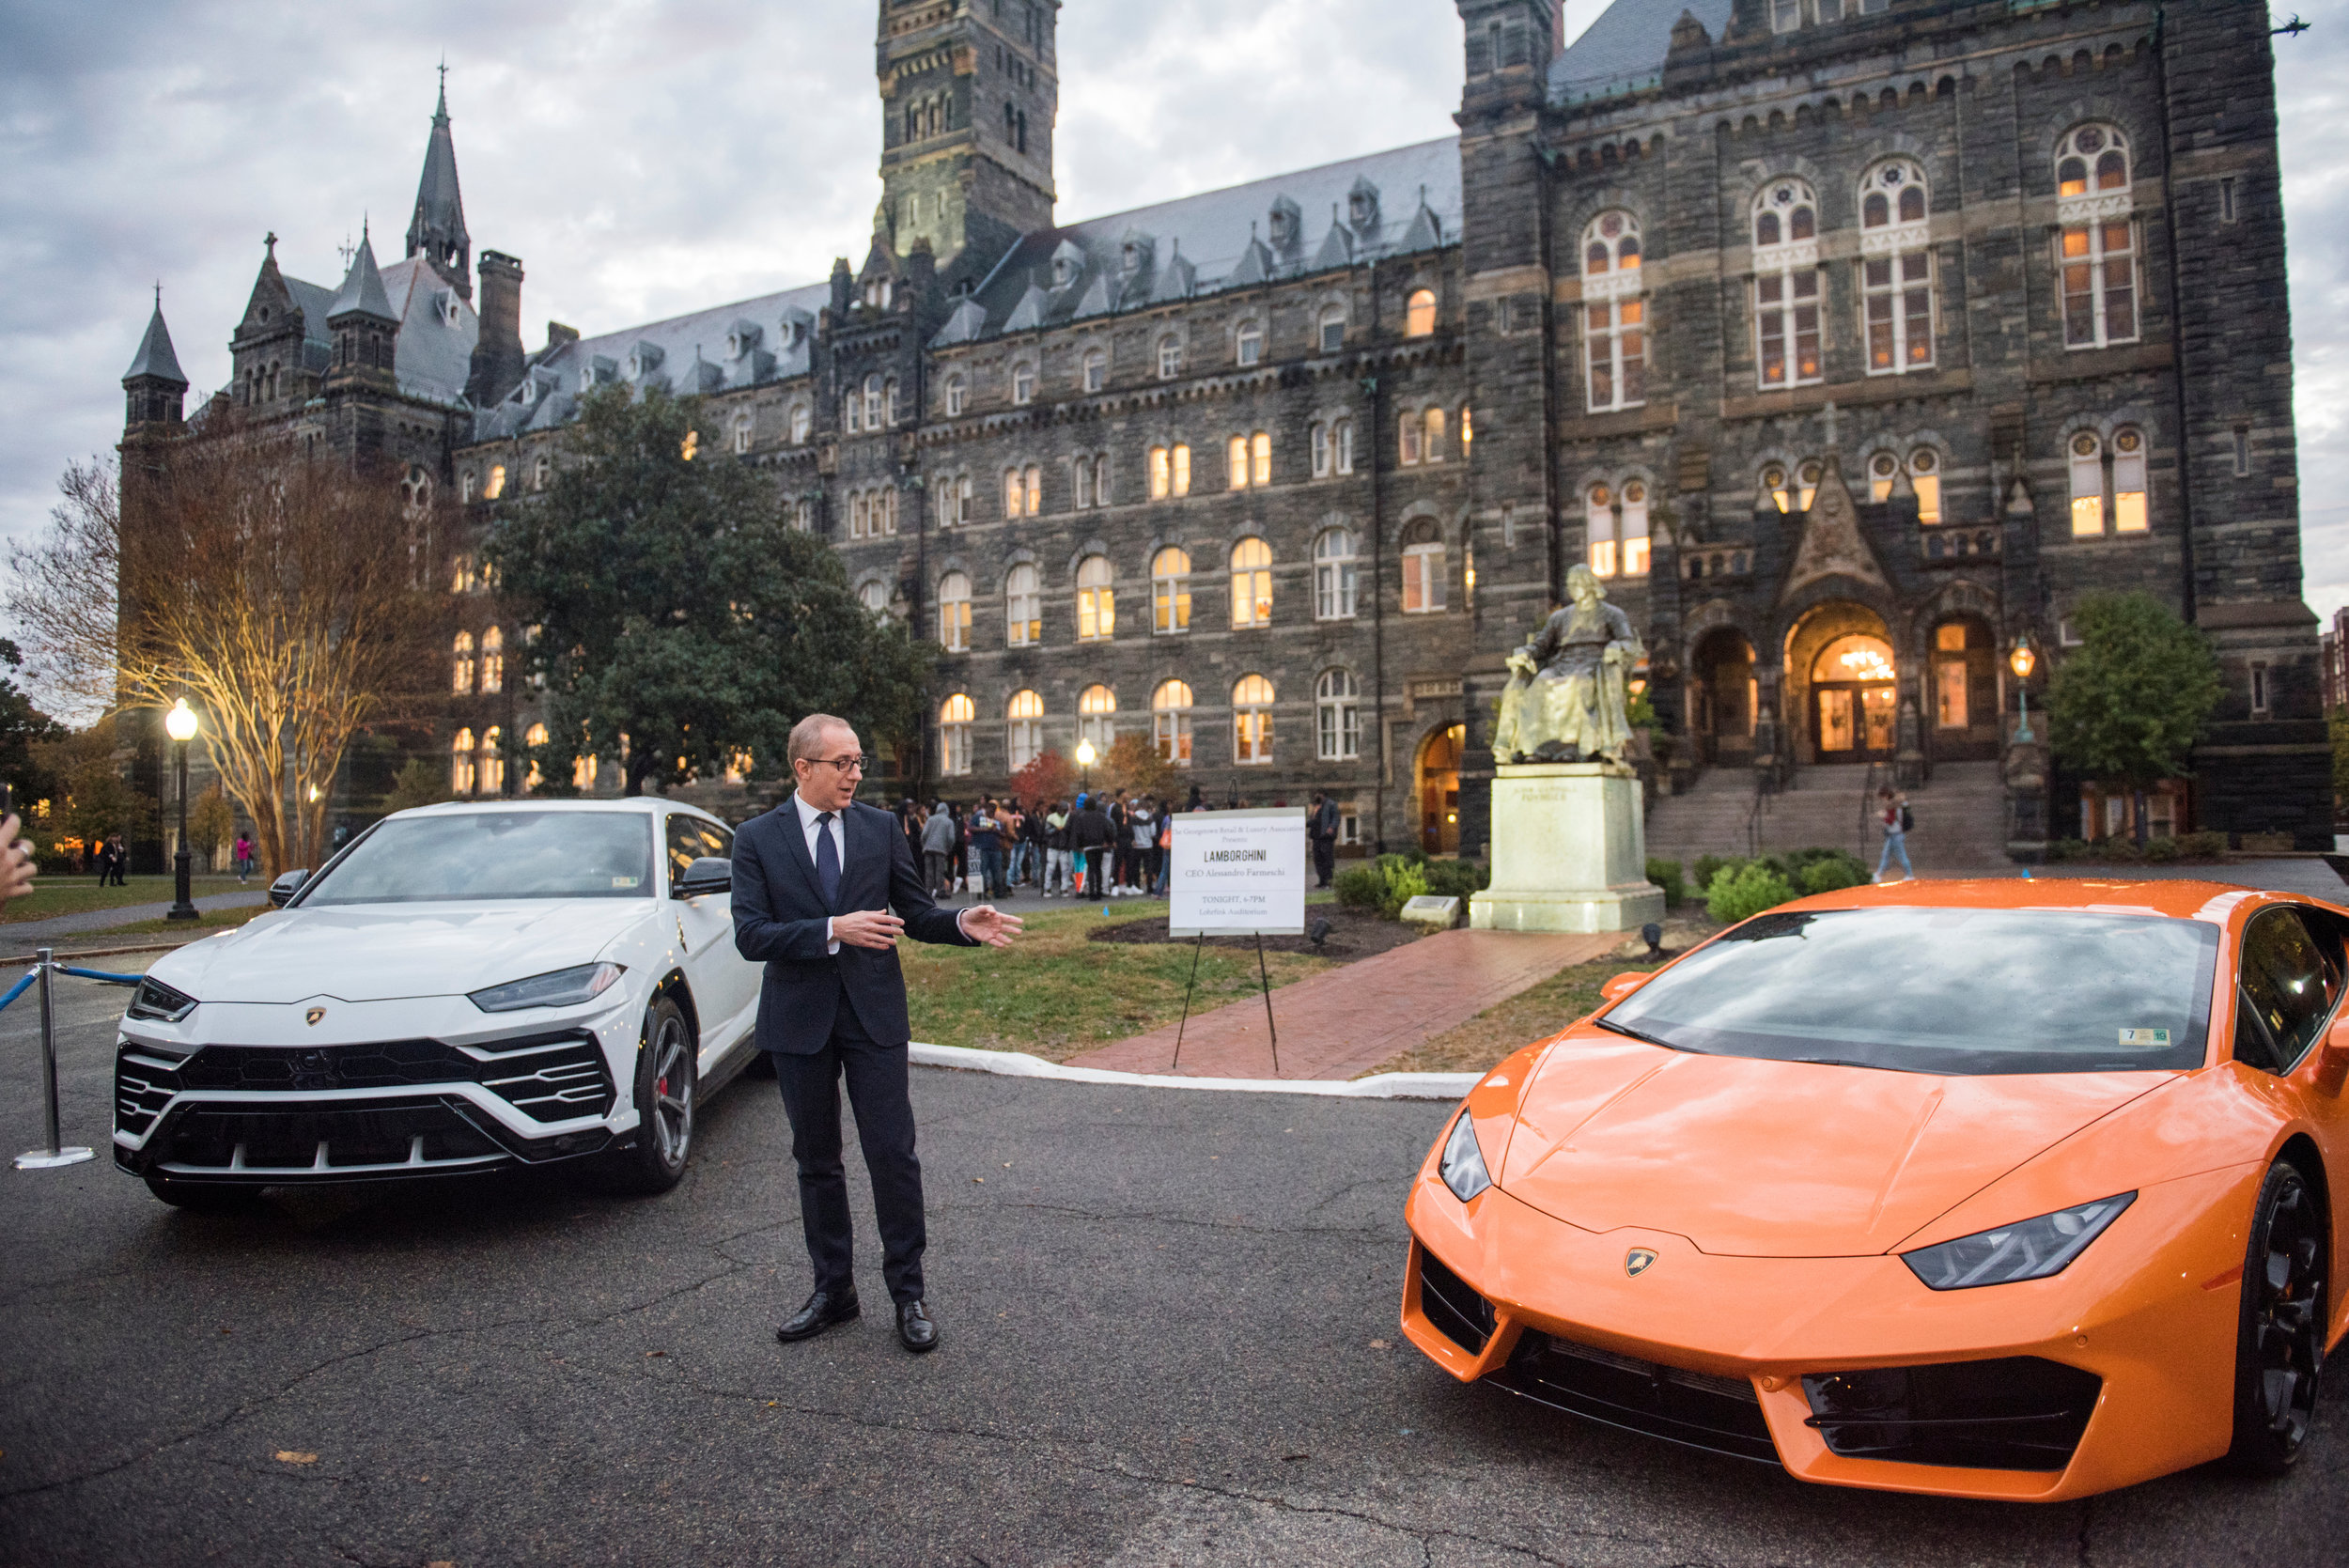 From Left of Image: Urus SUV Model and their Huracan Coupe Model on right.